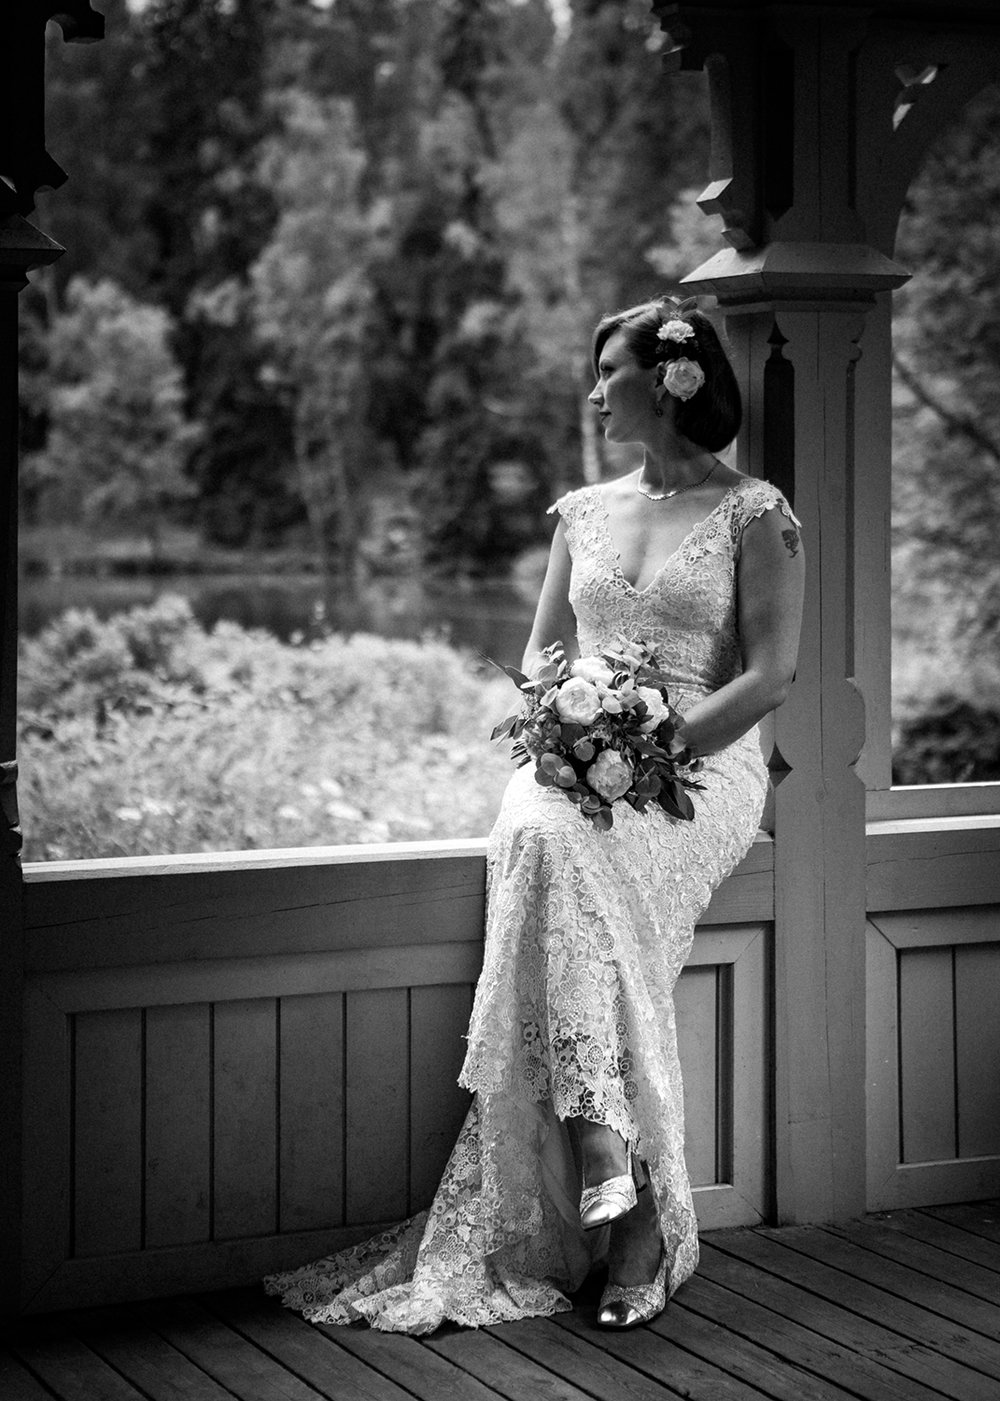 Weddingphotography_by_Sanni-Siira_94.jpg